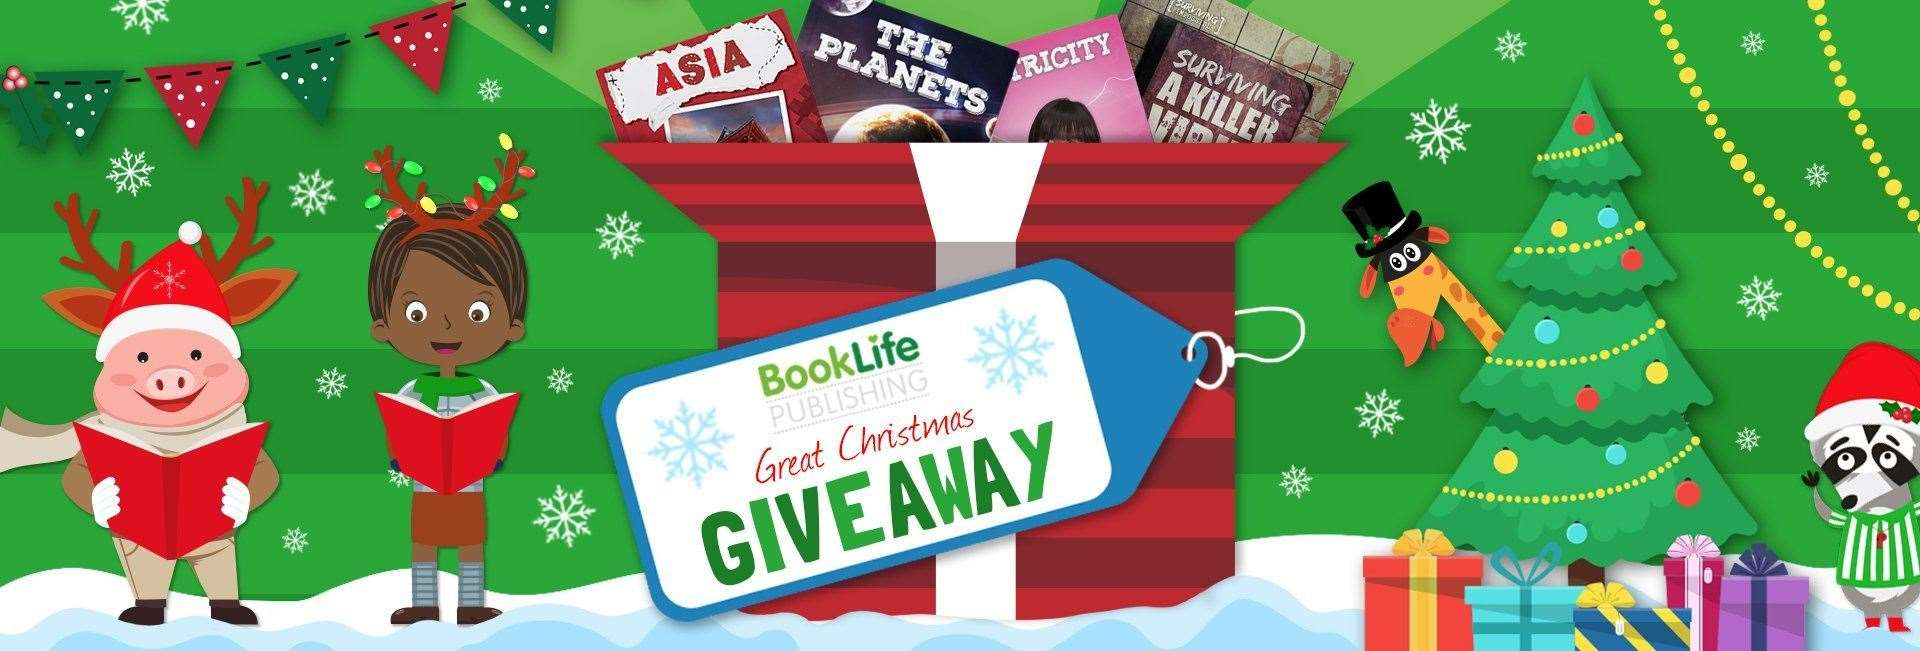 BookLife Publishing are hsoting a Great Christmas Giveaway(22760620)